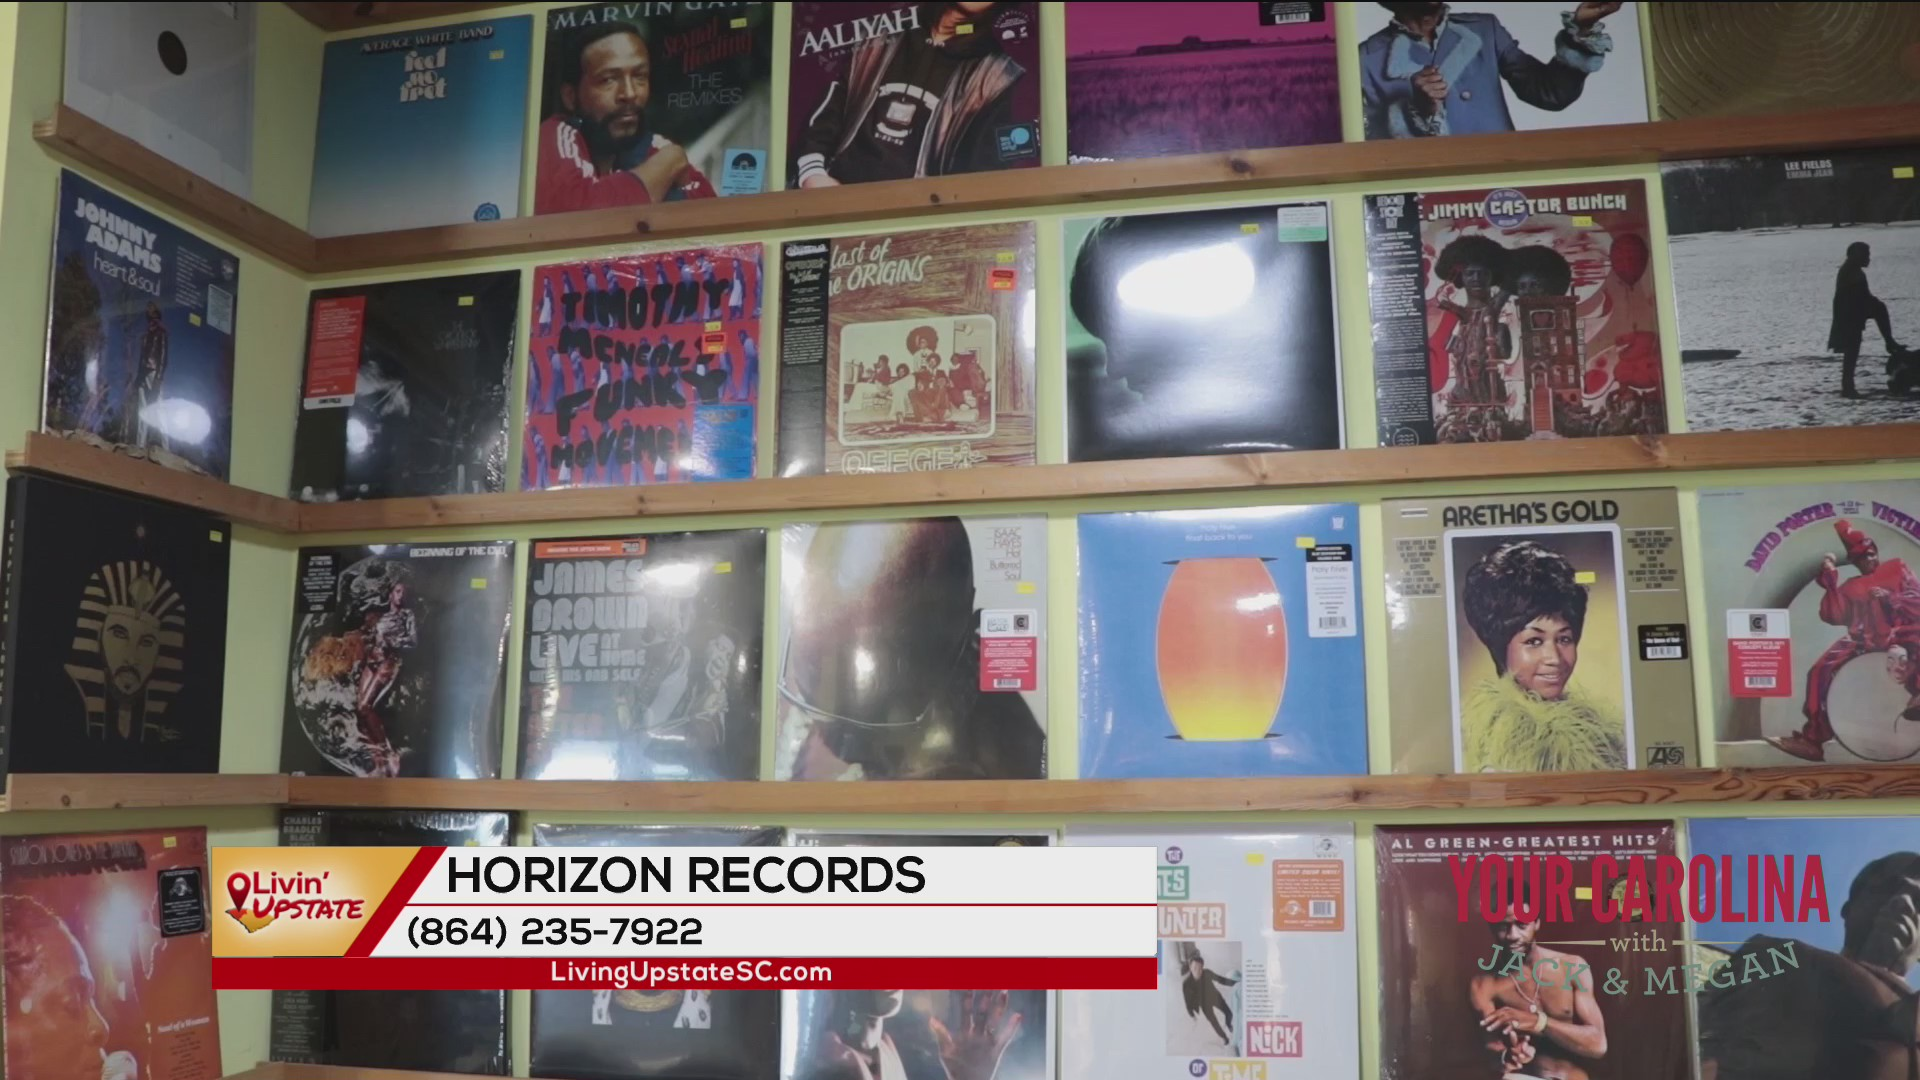 It's back to the future or forward to the past on National Vinyl Record Day